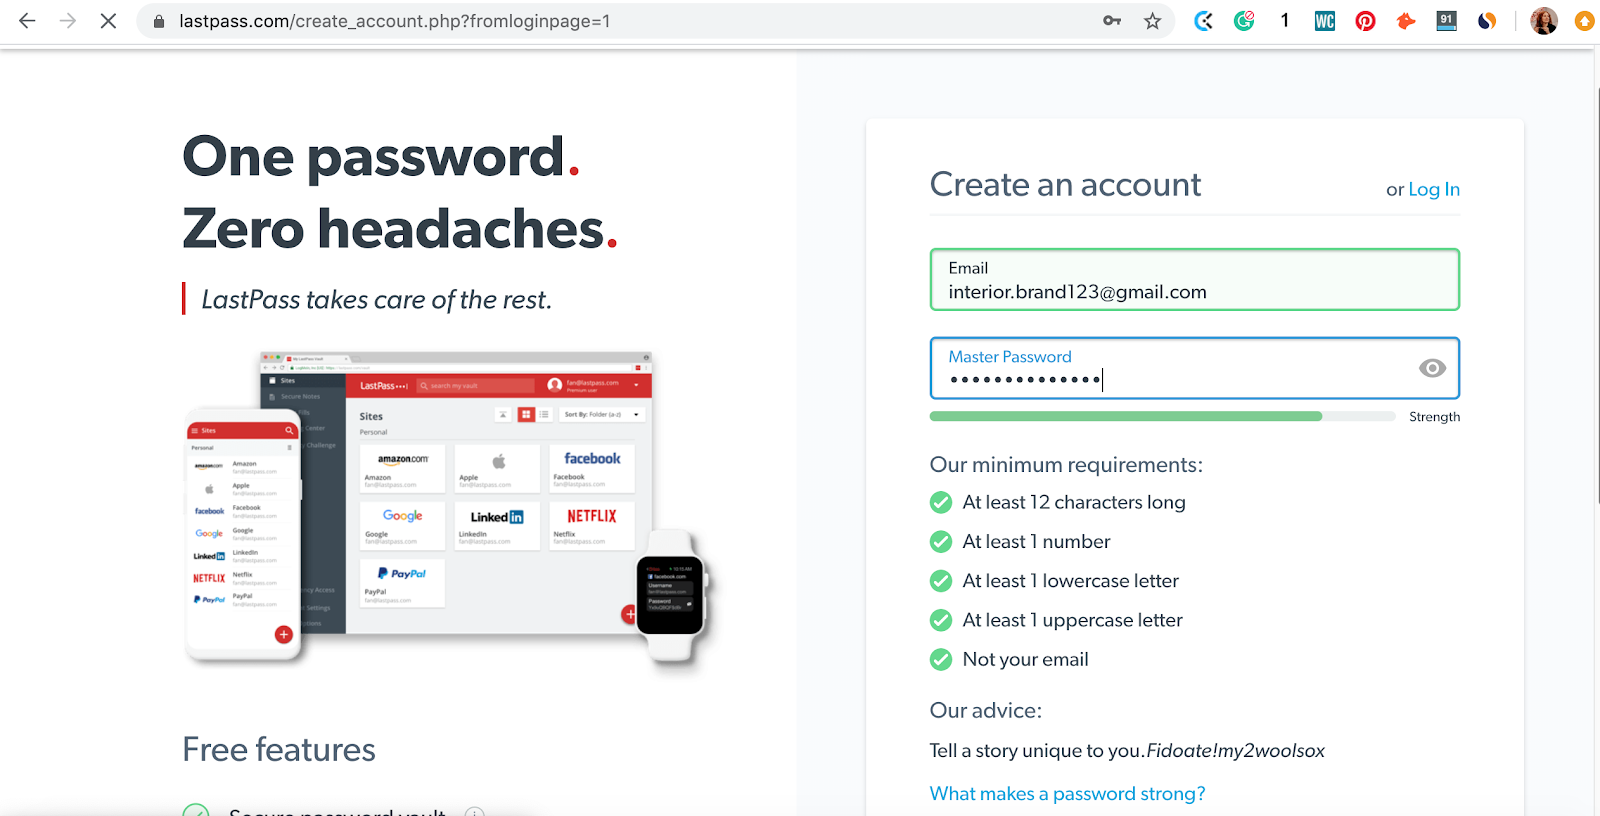 How to select secure master password on LastPass password manager app. Part of the article by Hana Clode Marketing 'LastPass Password Manager - Apps to Make Your Life Easier'.